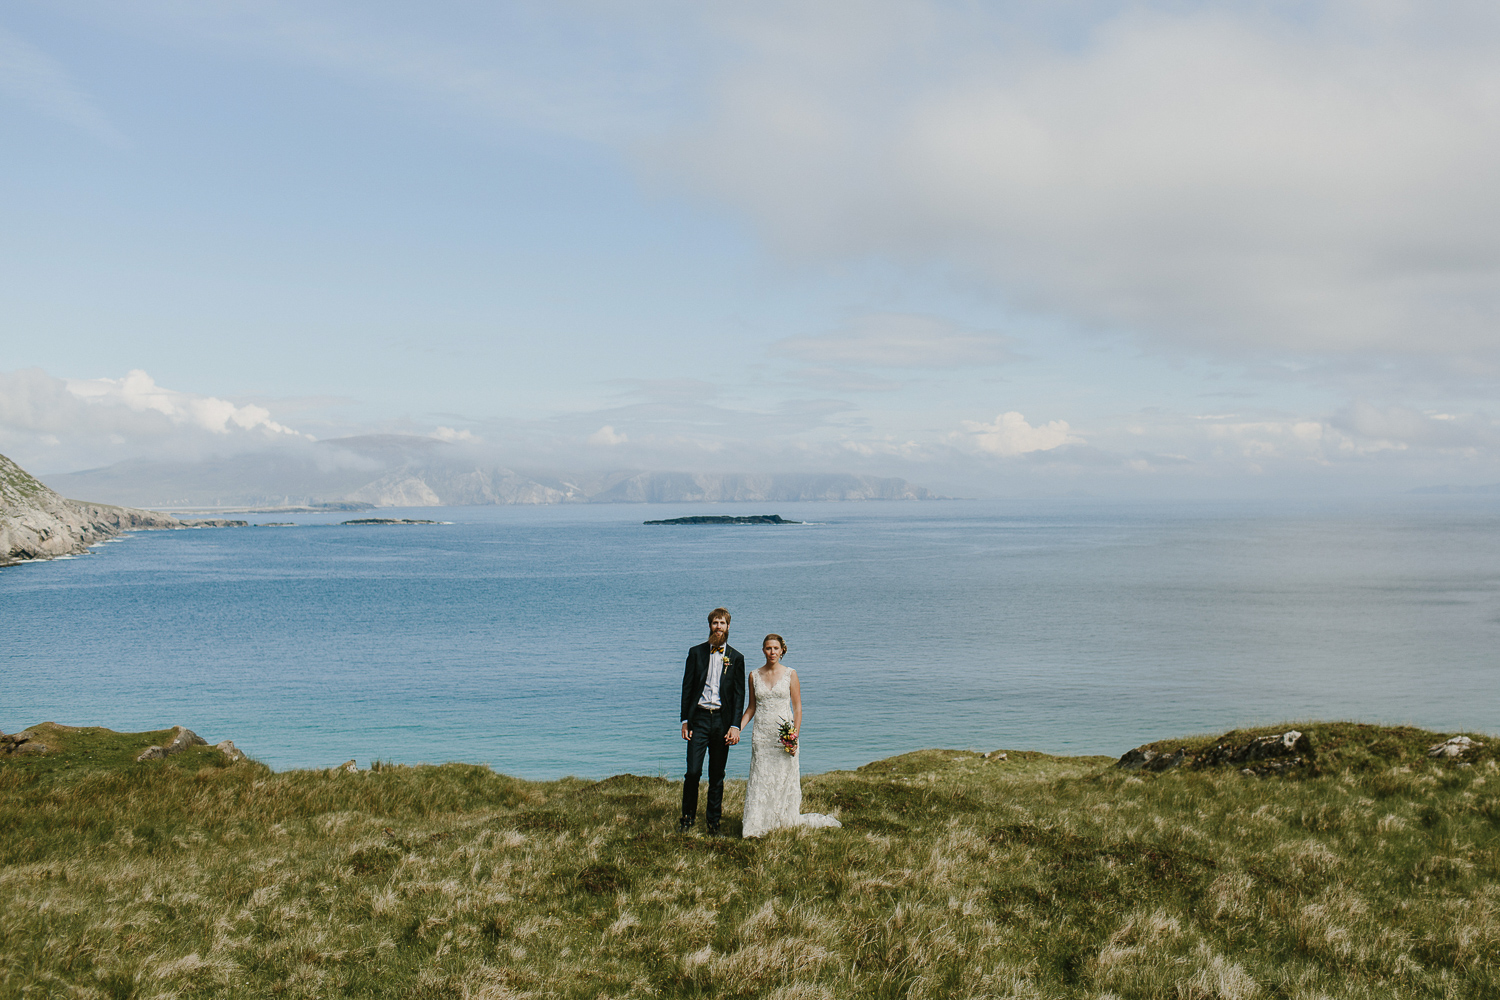 Achill-Island-Adventure-Wedding-Photographer-260.jpg